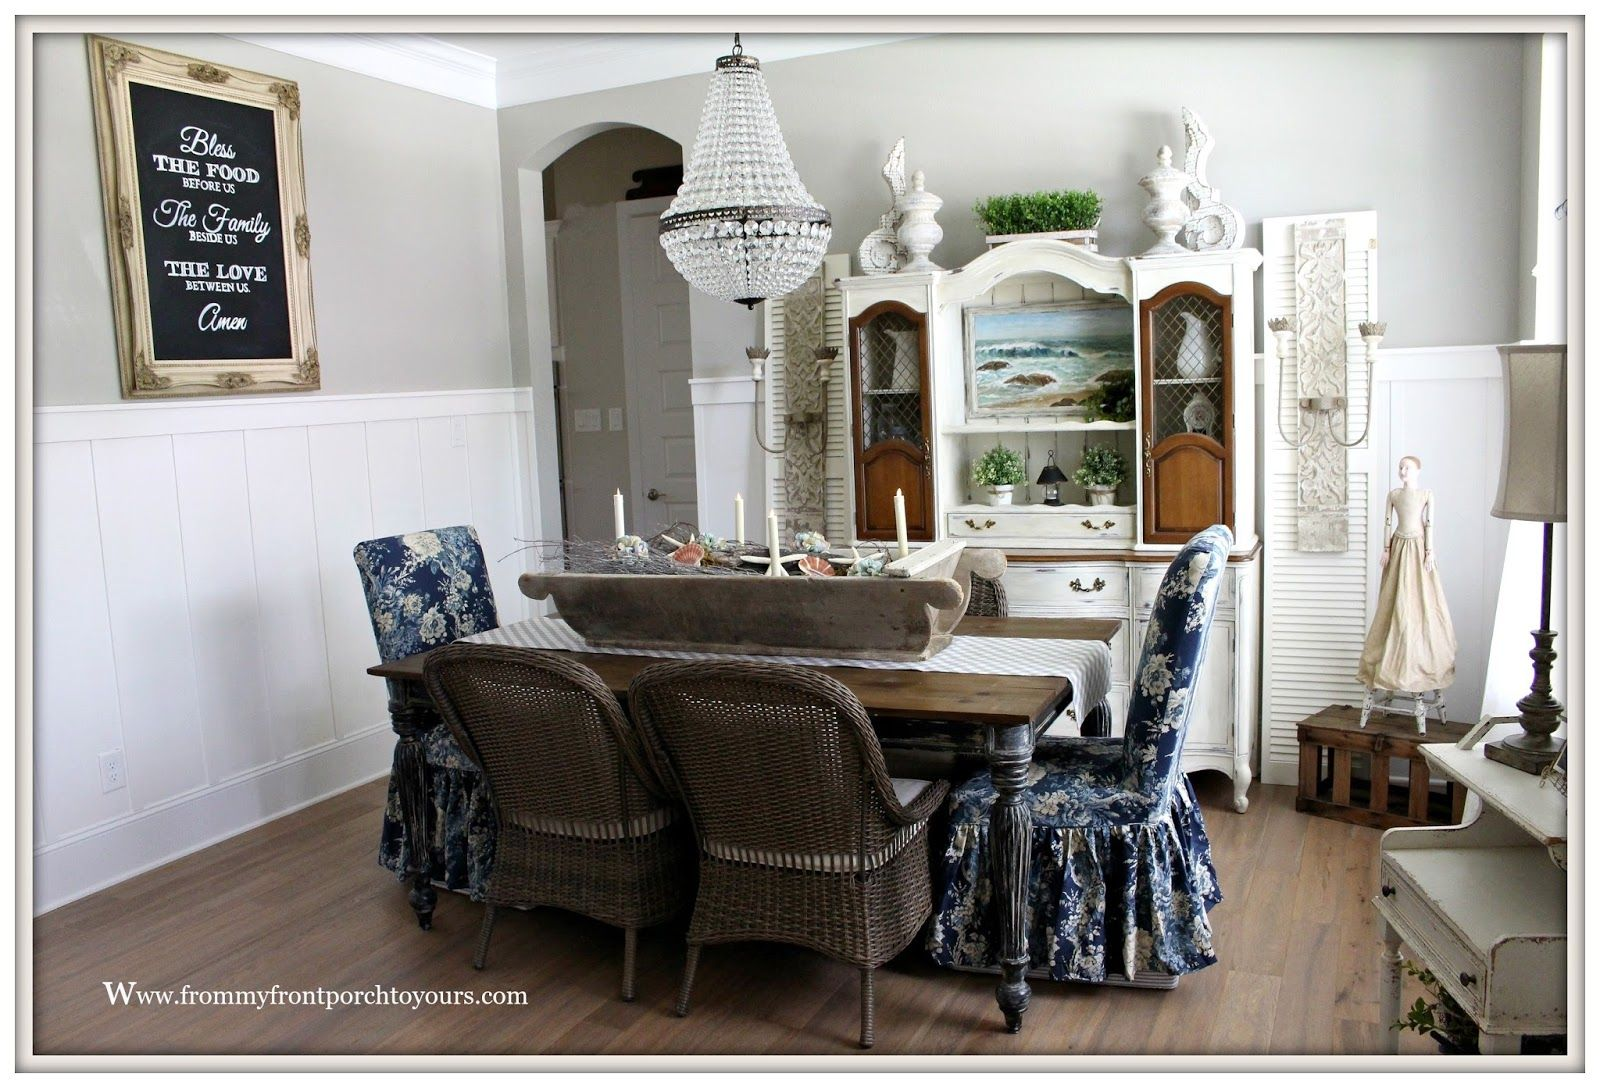 14 Unutterable French Wainscoting Ideas In 2020 Dining Room Wainscoting Wainscoting Styles Wainscoting Kitchen